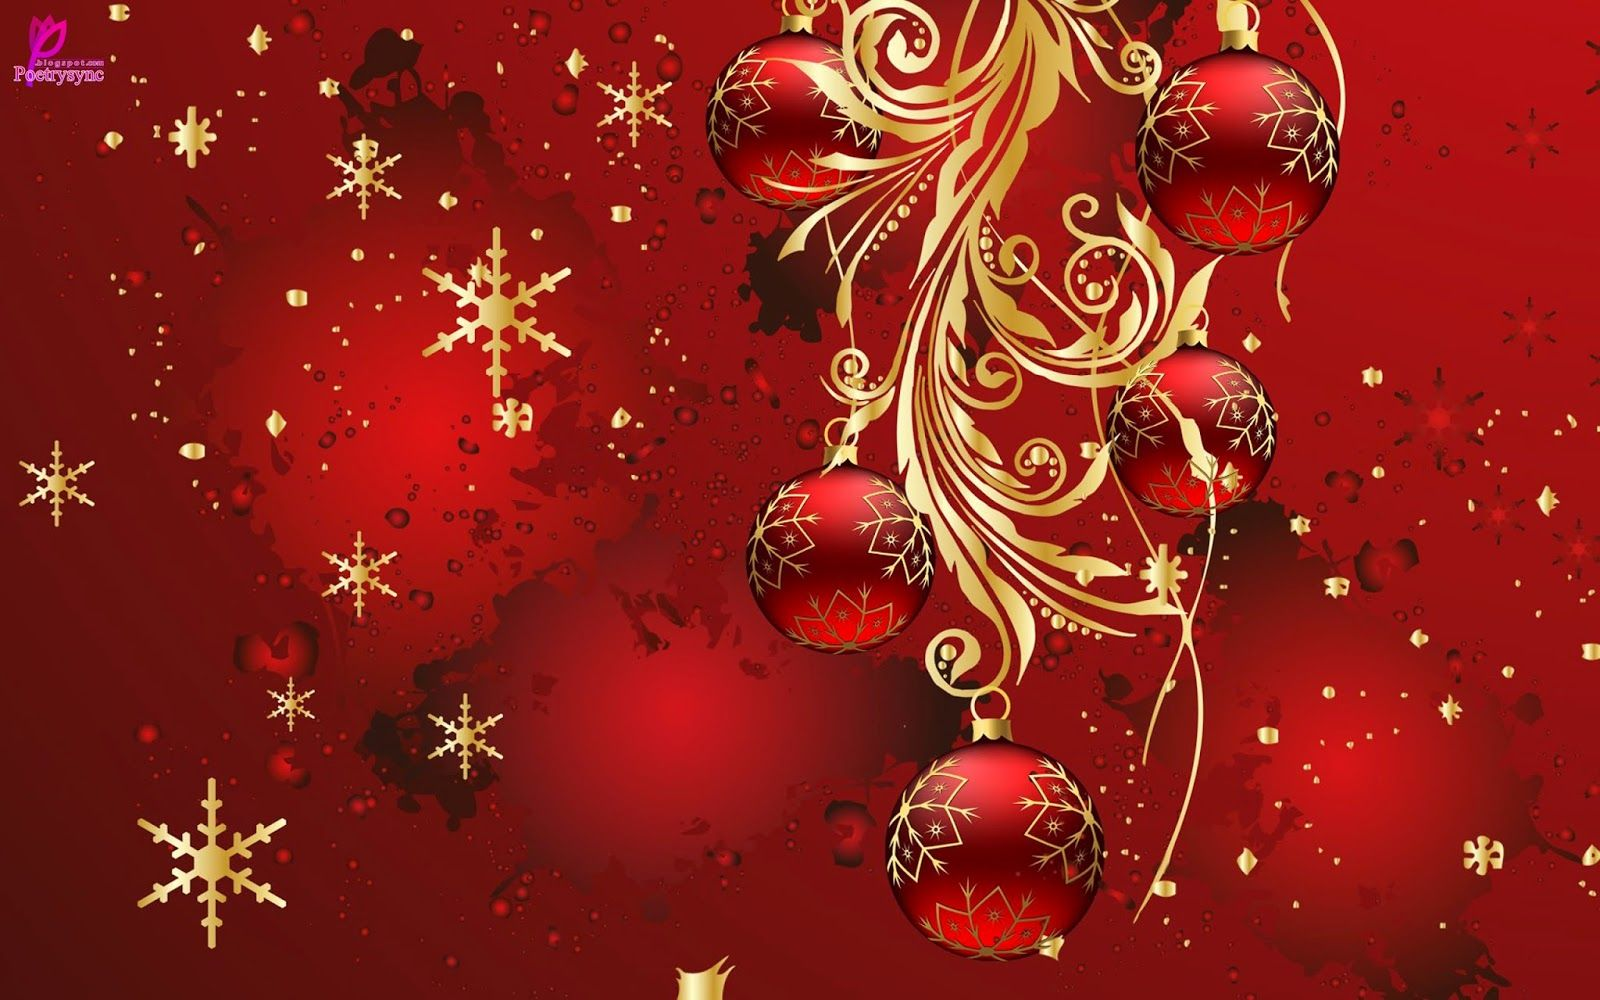 Merry christmas images yahoo image search results christmas merry christmas images yahoo image search results kristyandbryce Image collections